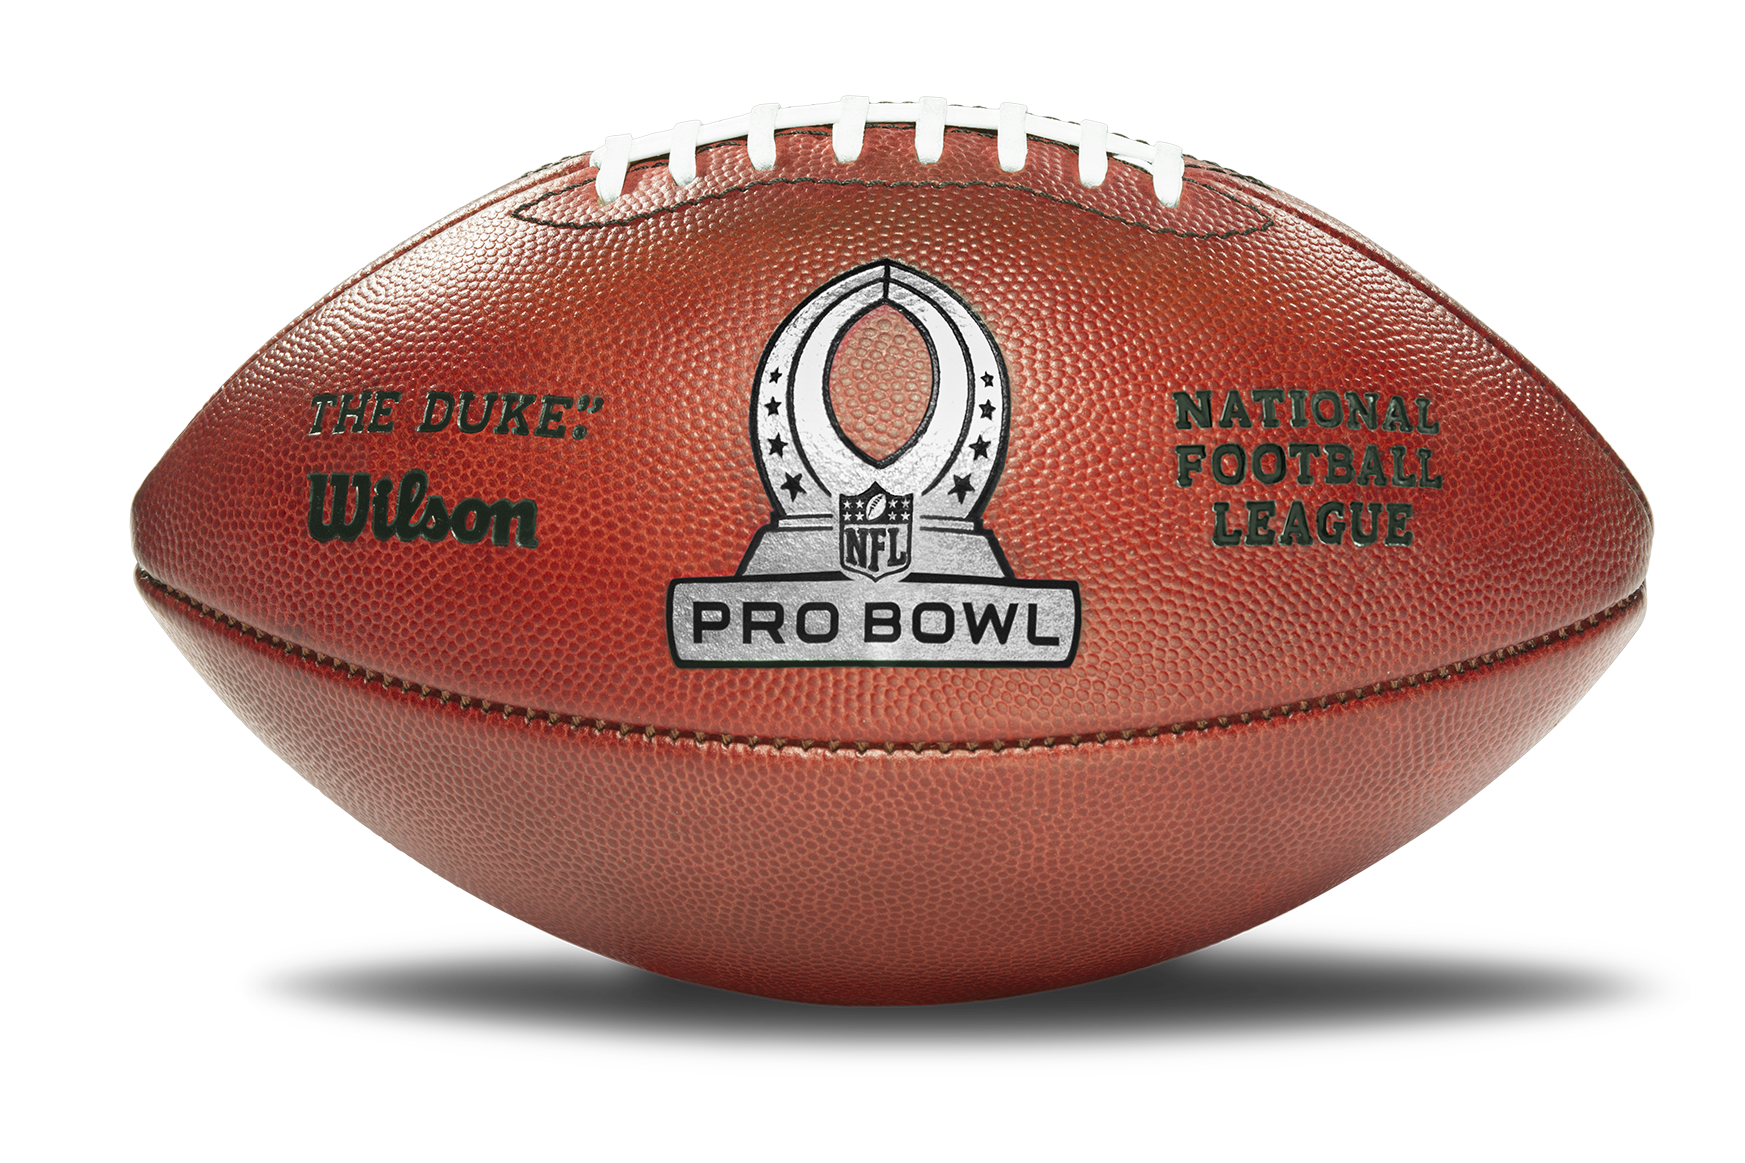 Super bowl football png. Nfl pro to